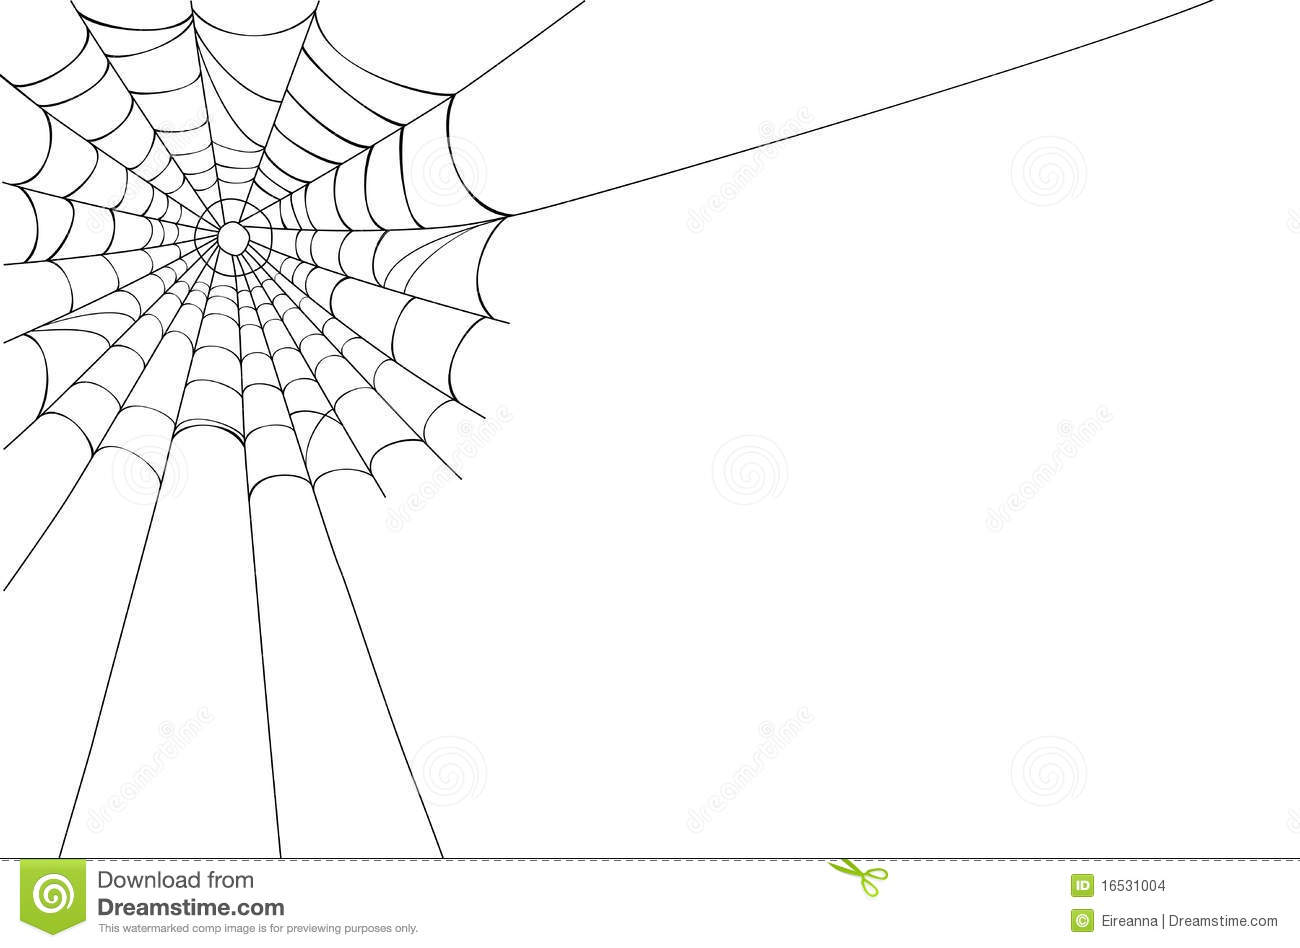 Stock Images Vector Spider Web White Image16531004 further Haunted castle likewise Coloringpages   pages halloween halloween 28 in addition Cauldron Colouring Page furthermore Black Spider. on scary halloween spider